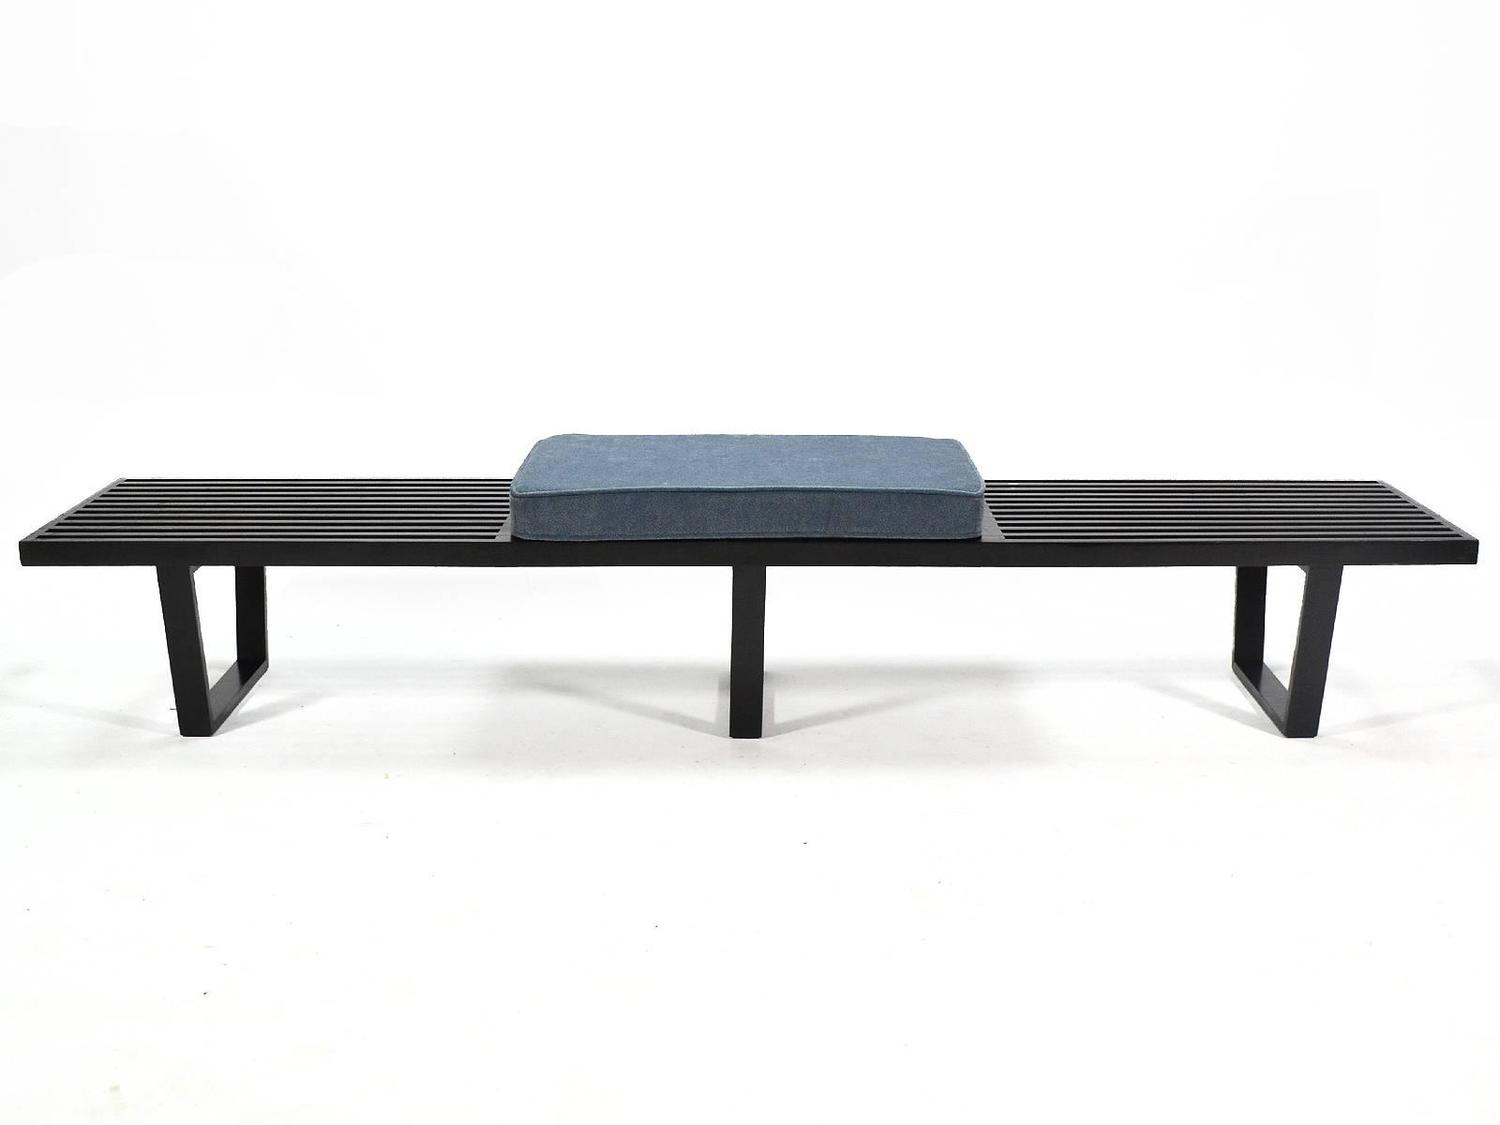 George Nelson Slat Platform Bench At 1stdibs